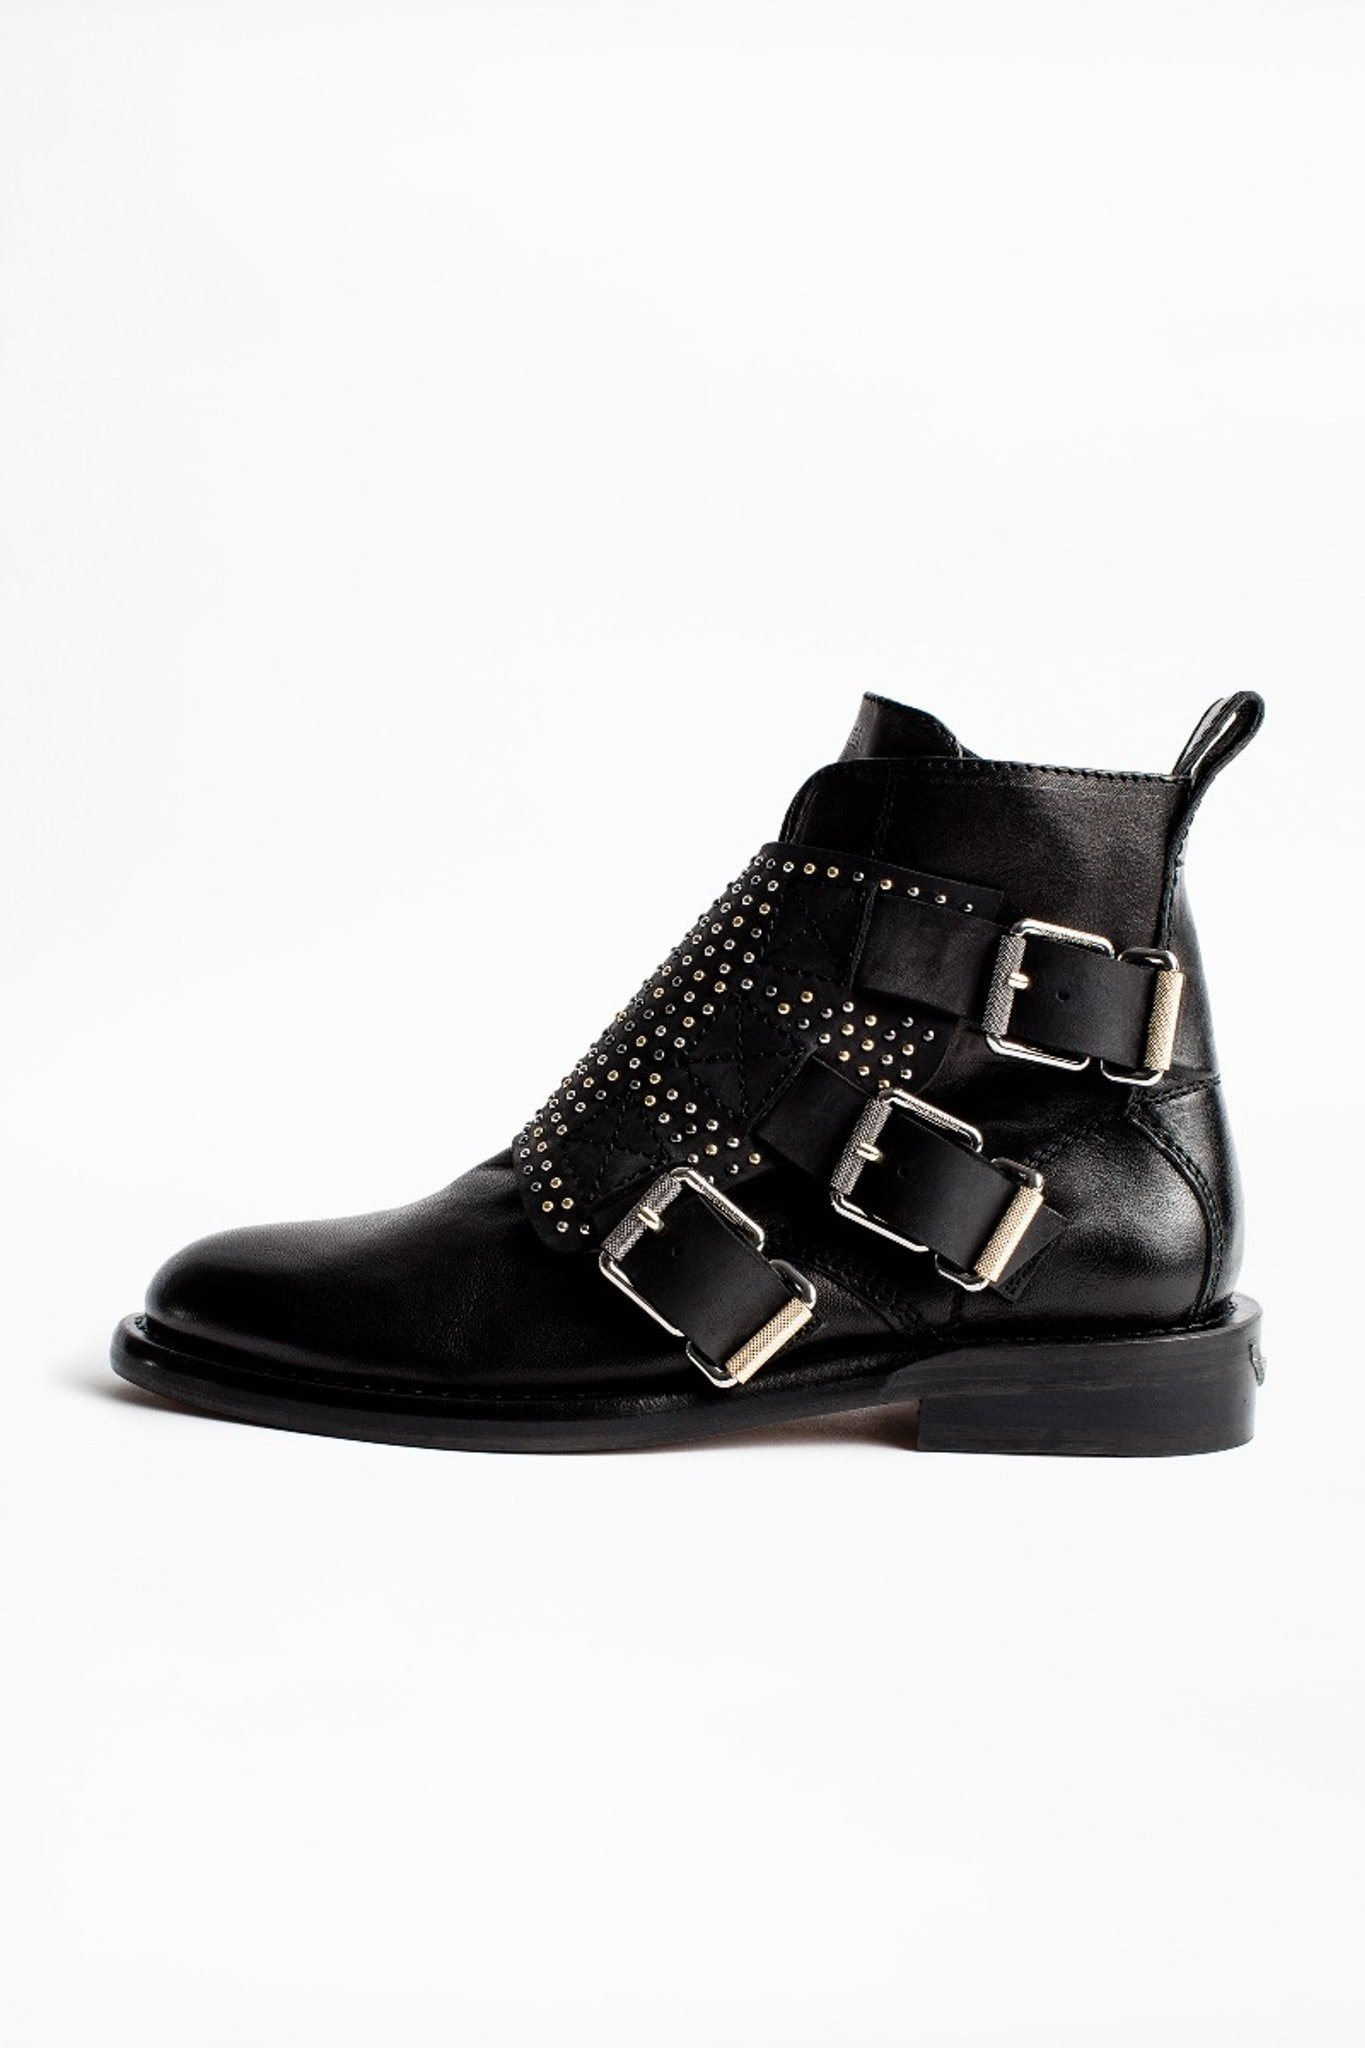 Laureen Flap Studs Ankle Boots